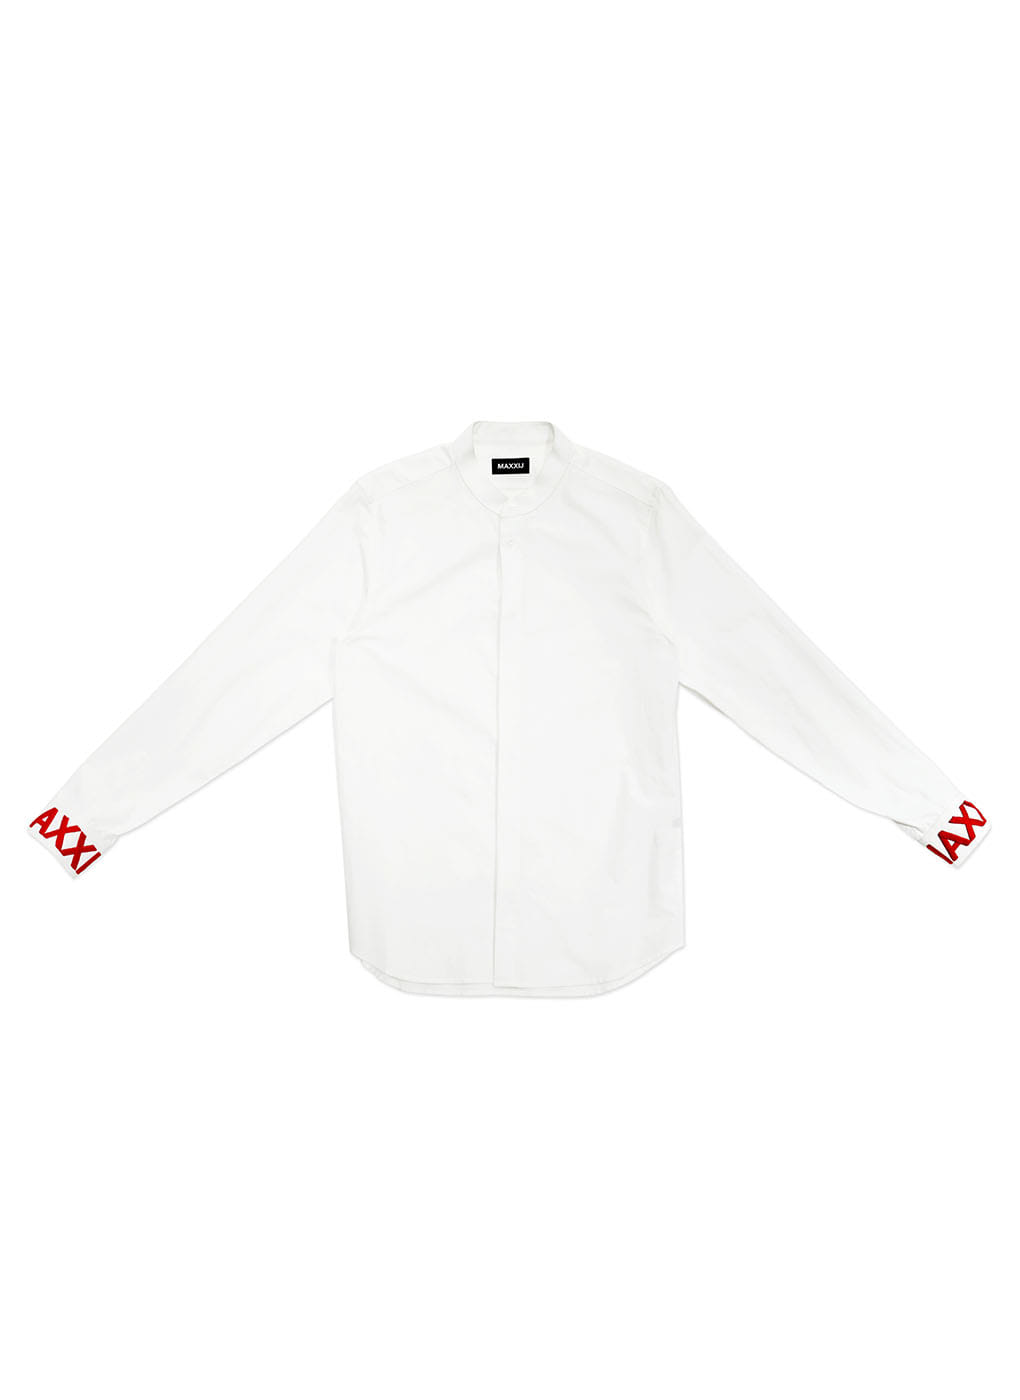 White Stand Collar Shirt With Cuff Embroidery